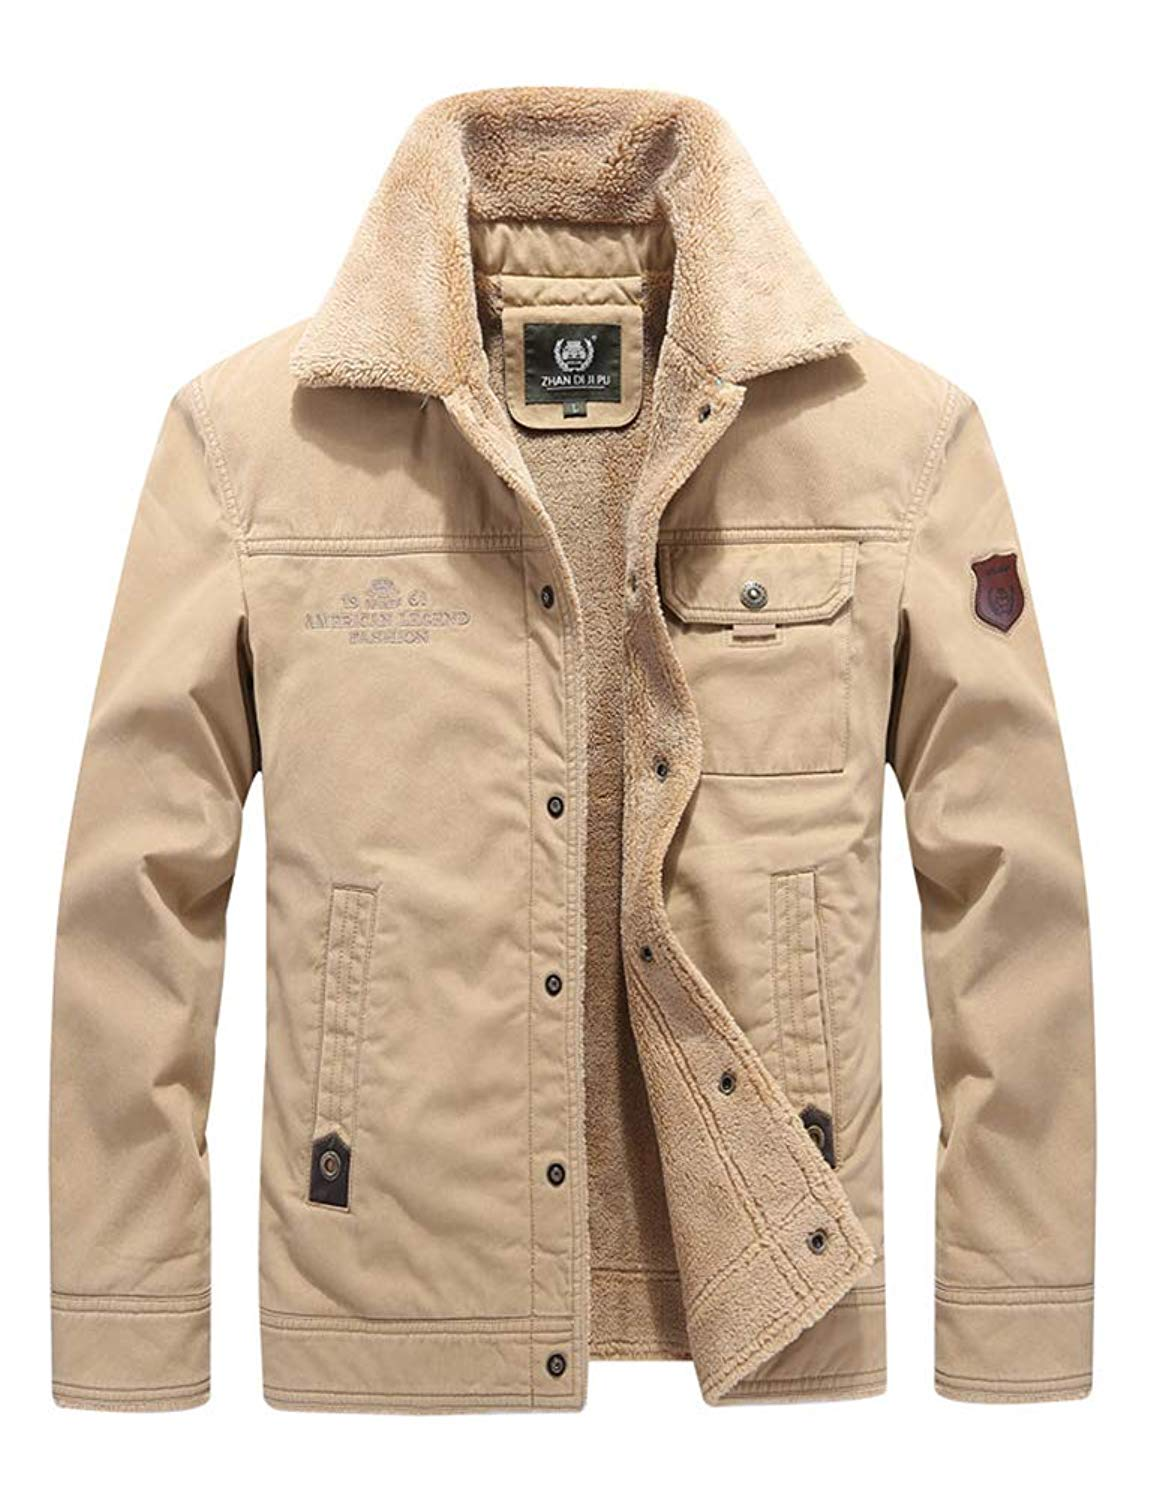 cfca0ef429 Get Quotations · IDEALSANXUN Men s Thick Lined Cotton Padded Jacket  Military Cargo Outdoor Jacket